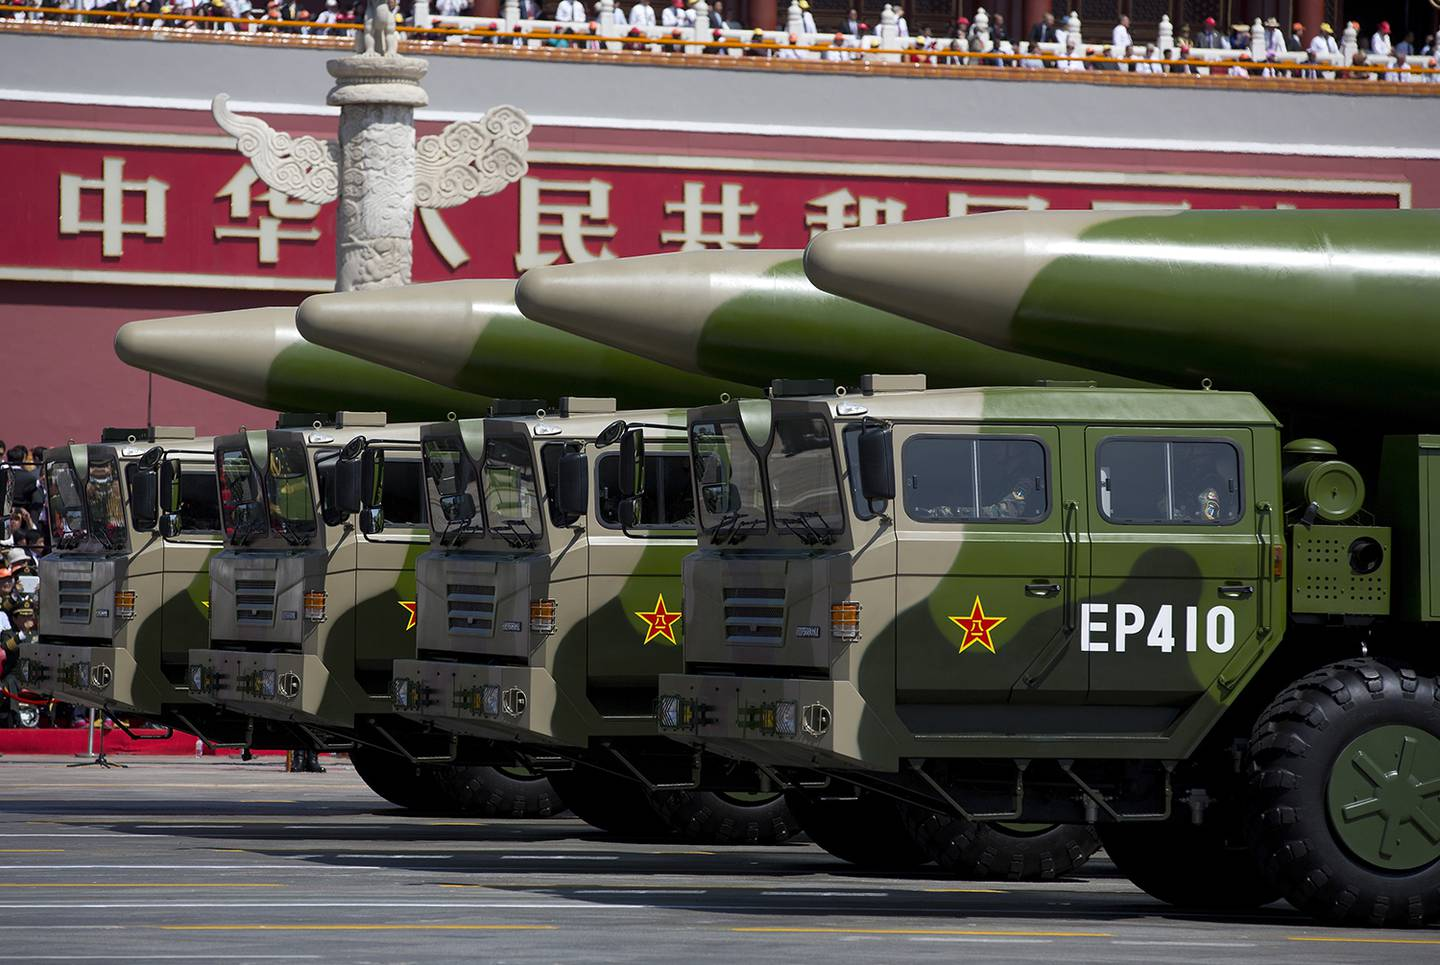 Military vehicles carrying DF-26 ballistic missiles, drive past the Tiananmen Gate during a military parade to mark the 70th anniversary of the end of World War II on Sept. 3, 2015, in Beijing.